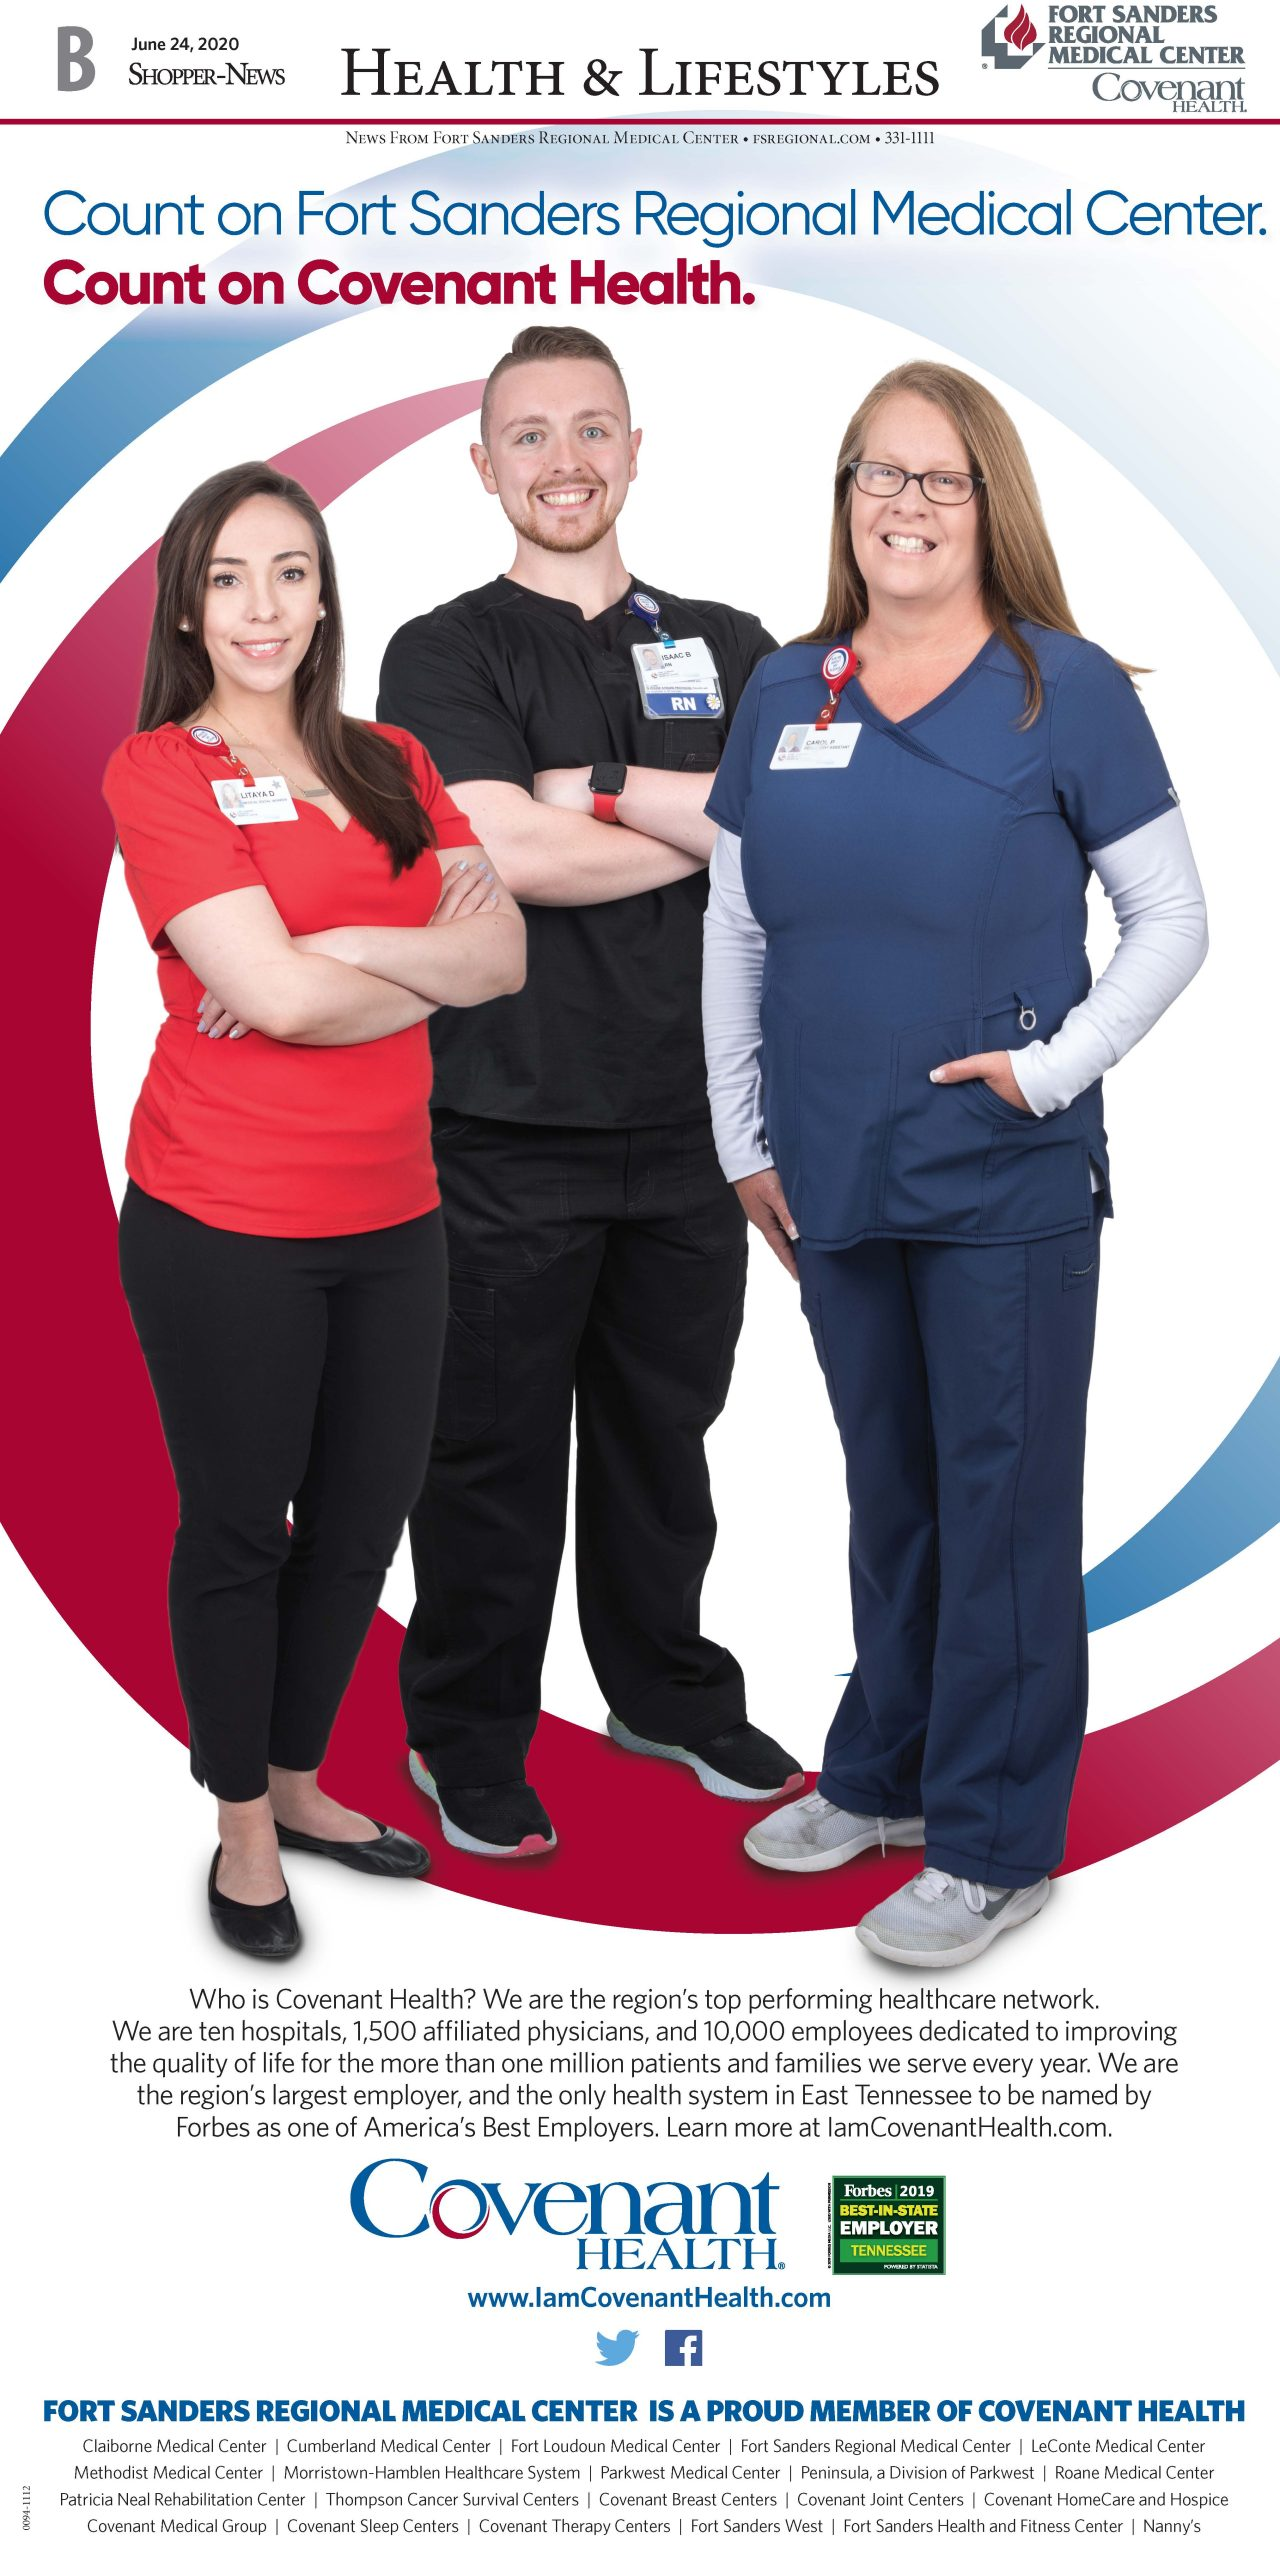 Count on Covenant Health